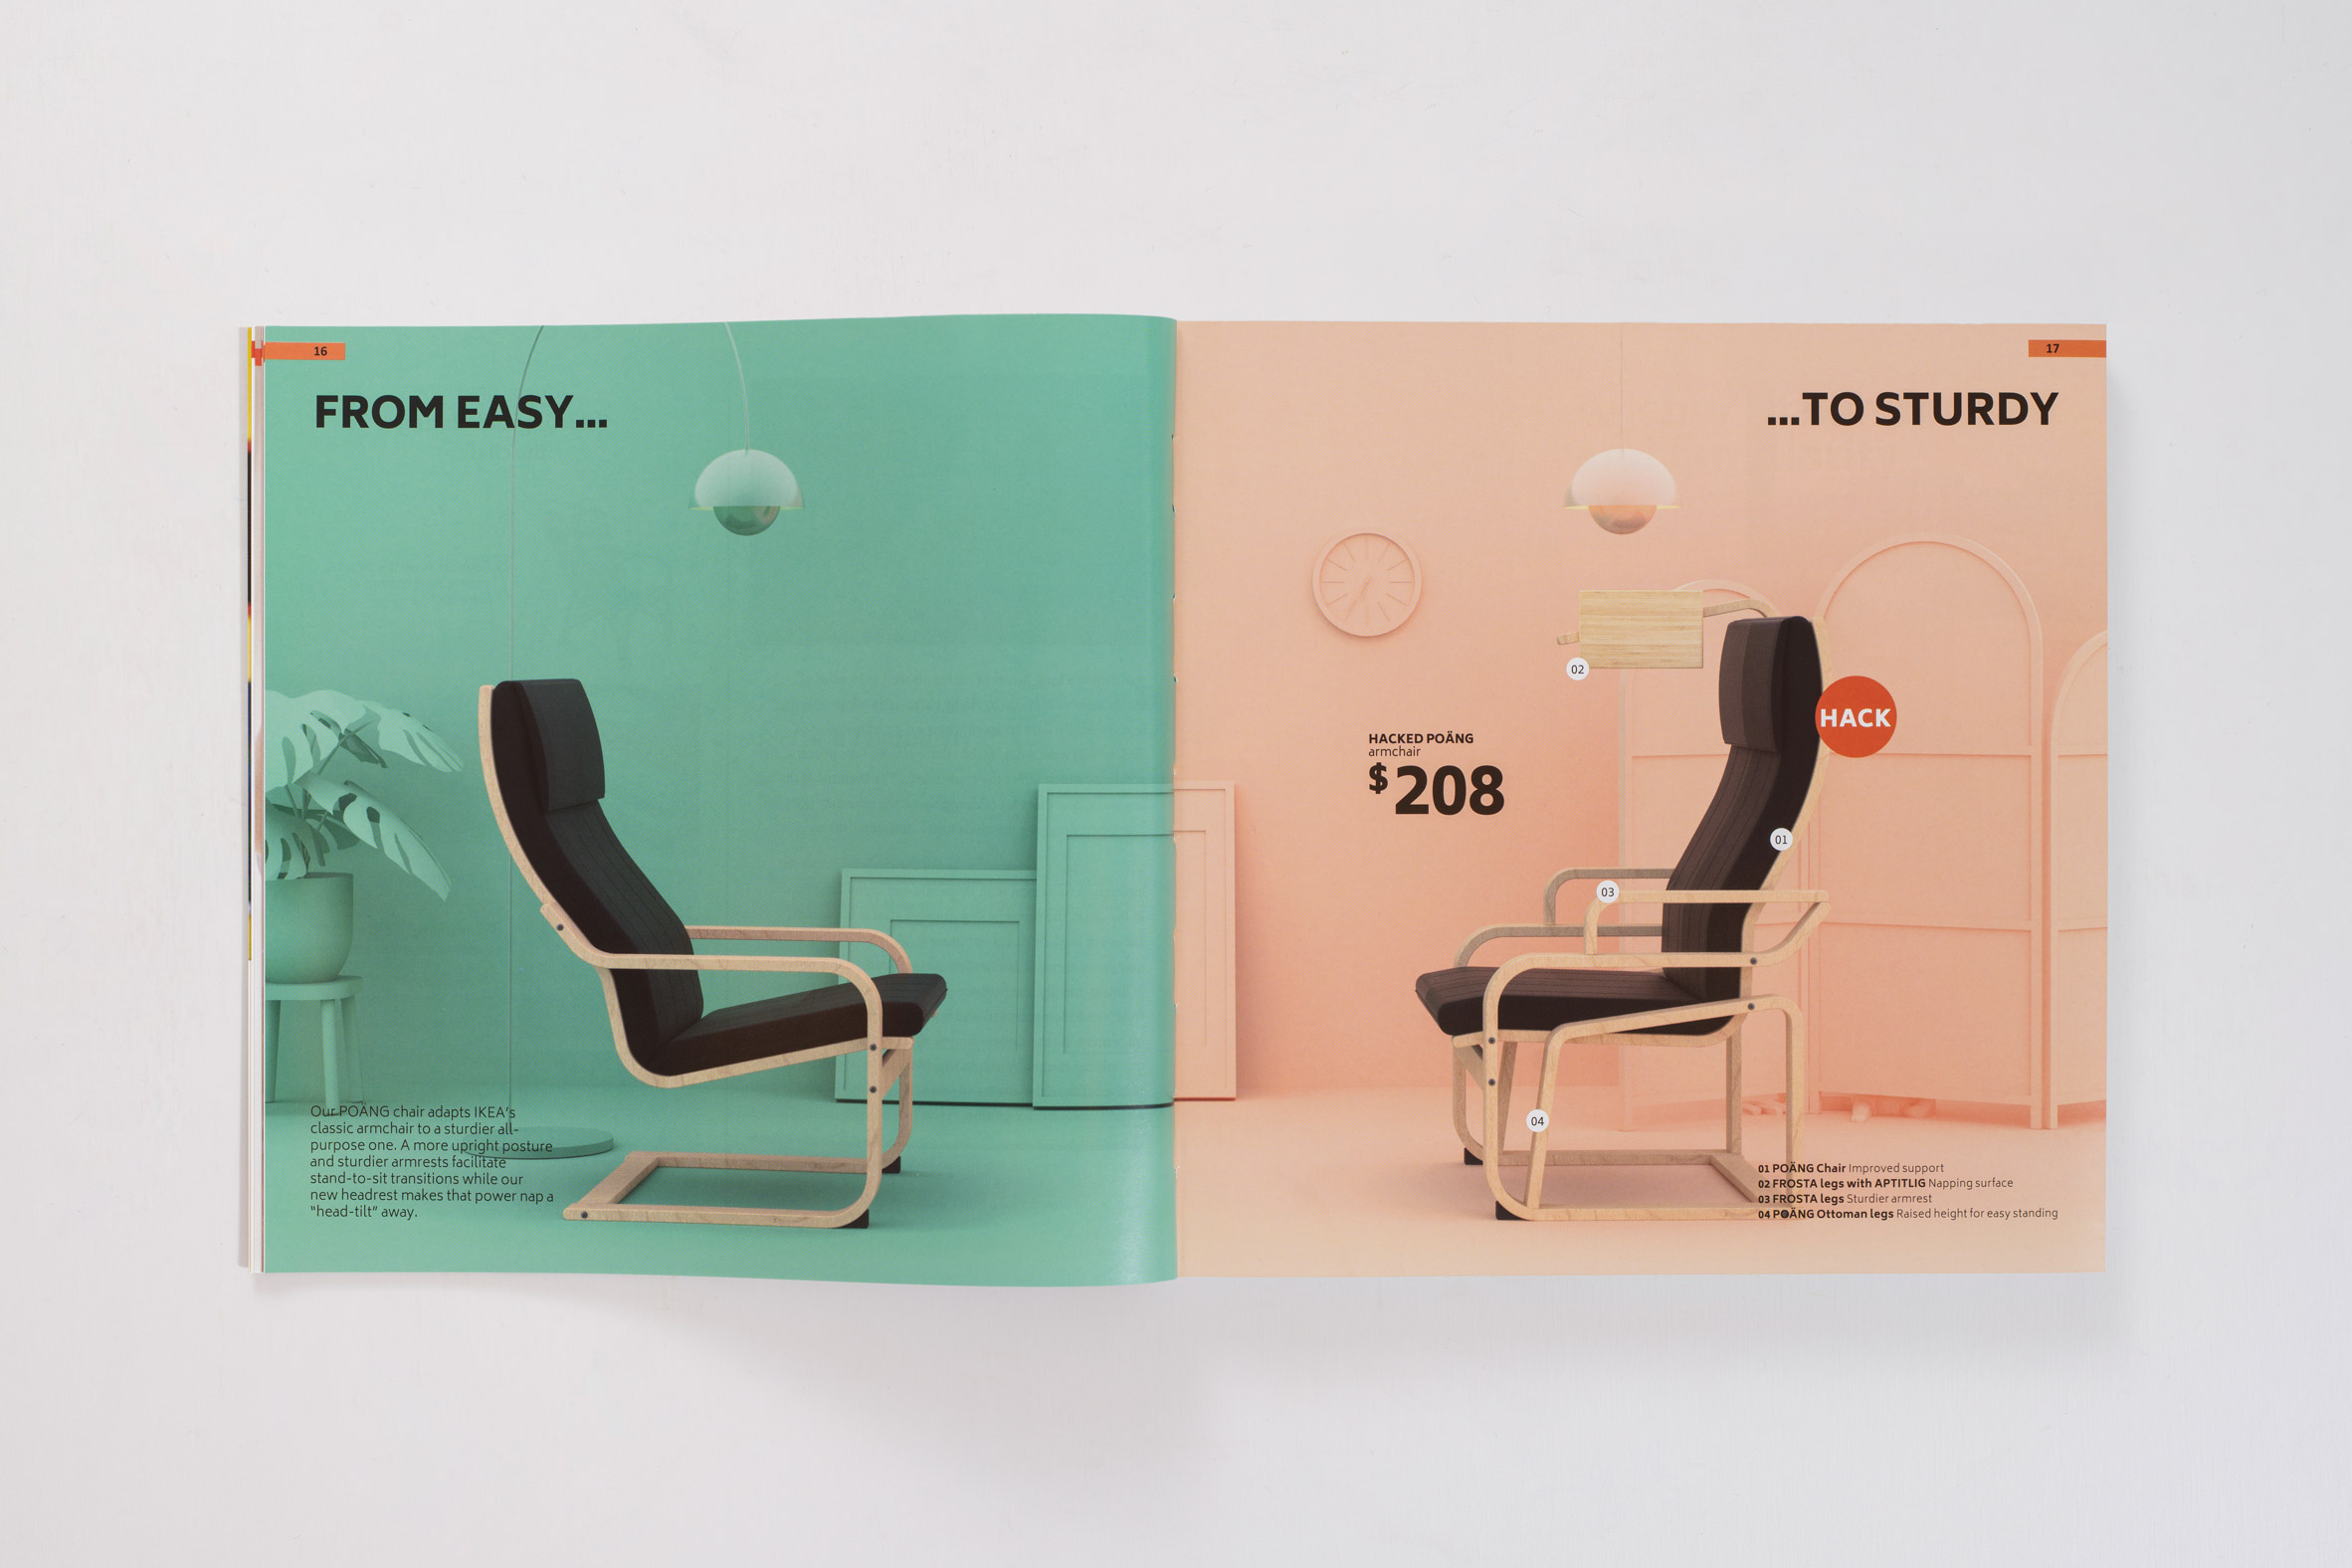 Hack of the IKEA Poäng armchair from the Hack Care book